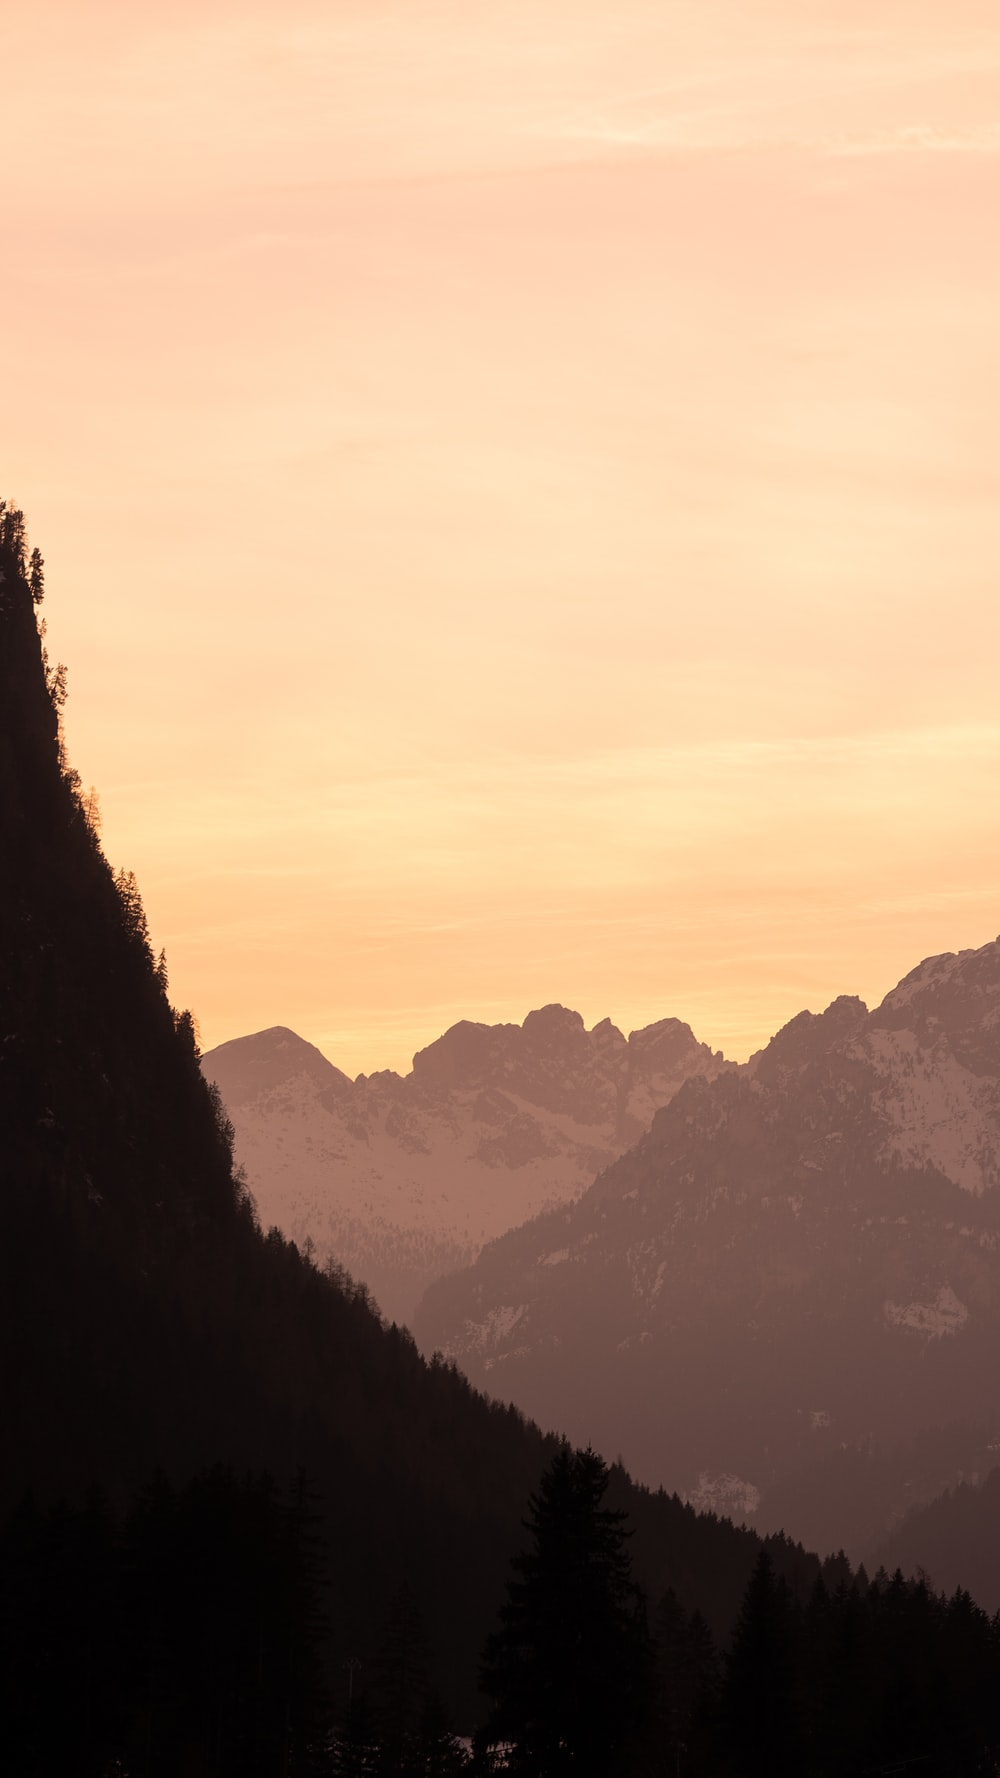 silhouette of trees and mountains during sunset